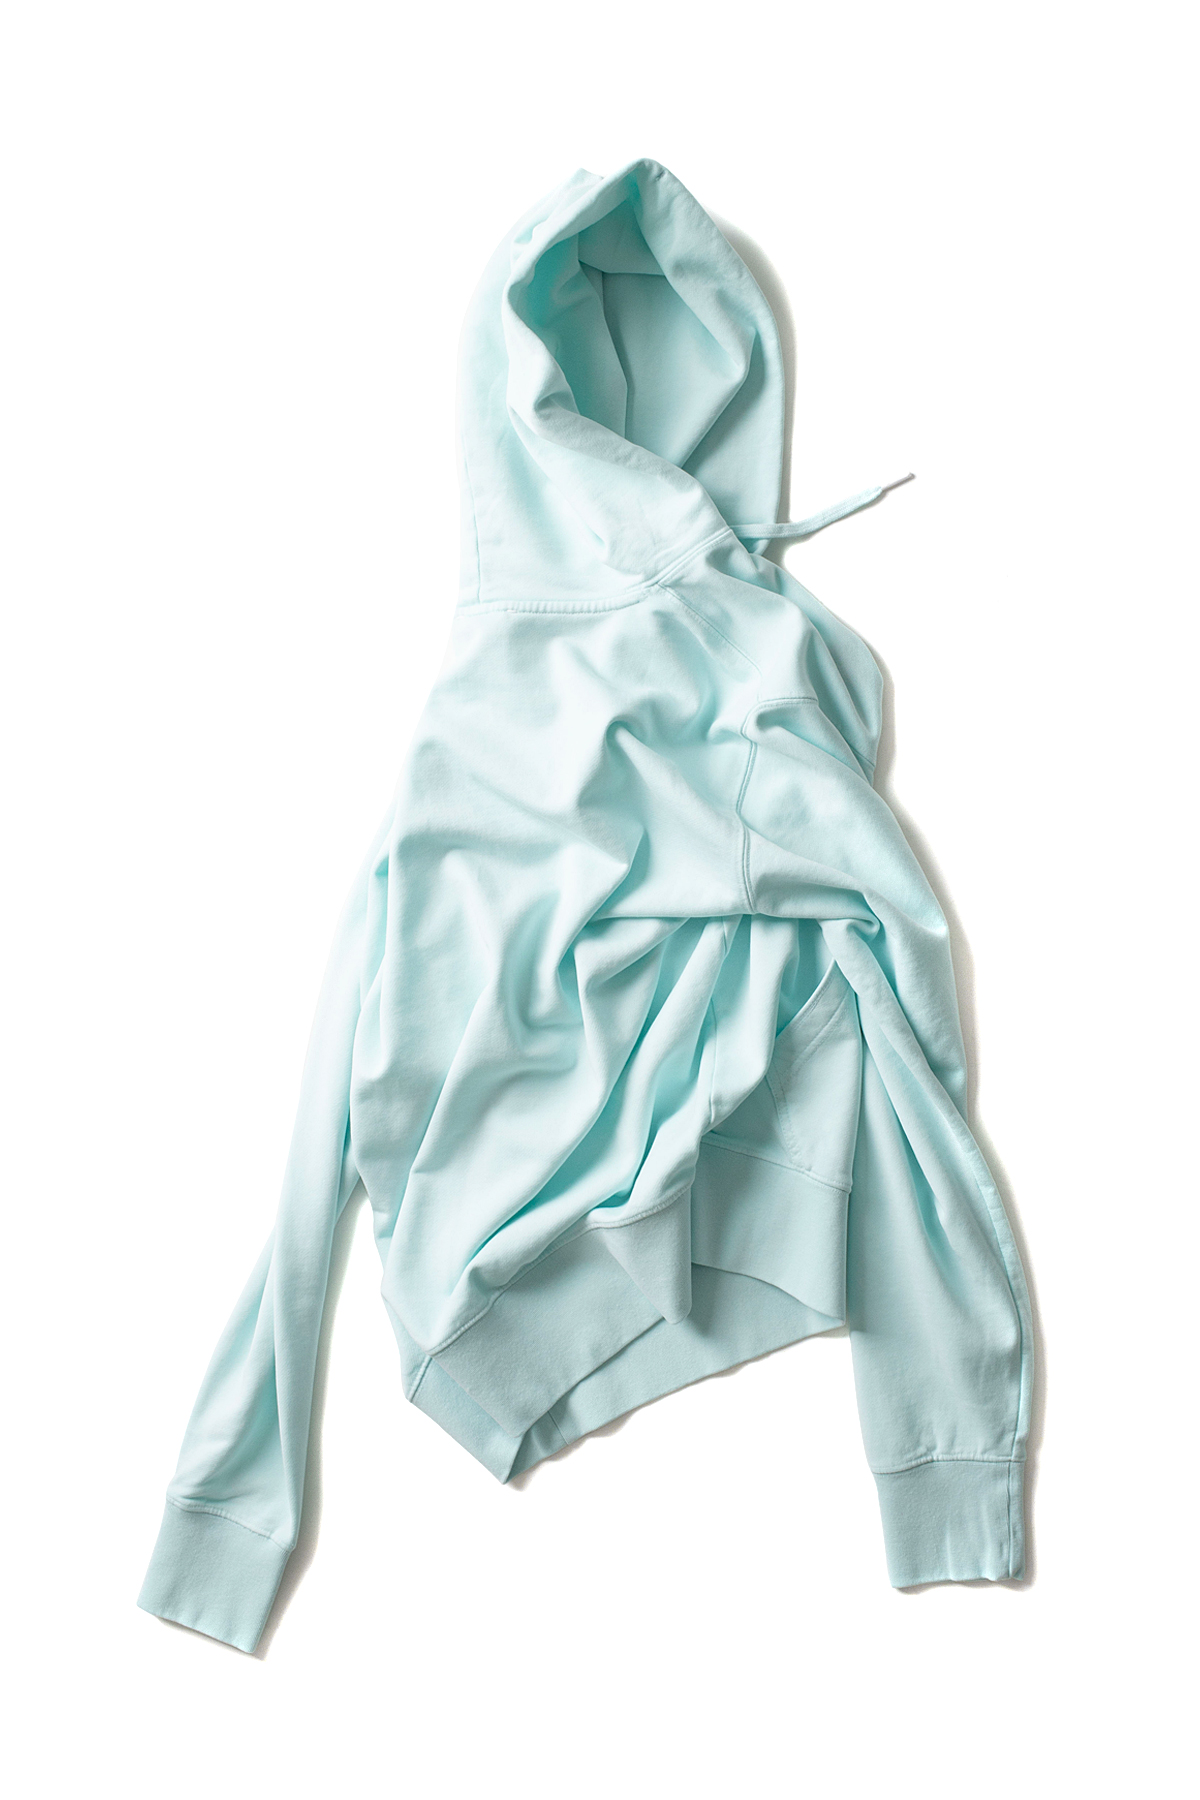 AECA WHITE x IAMSHOP Exclusive : Pullover Hoodie (Mint)